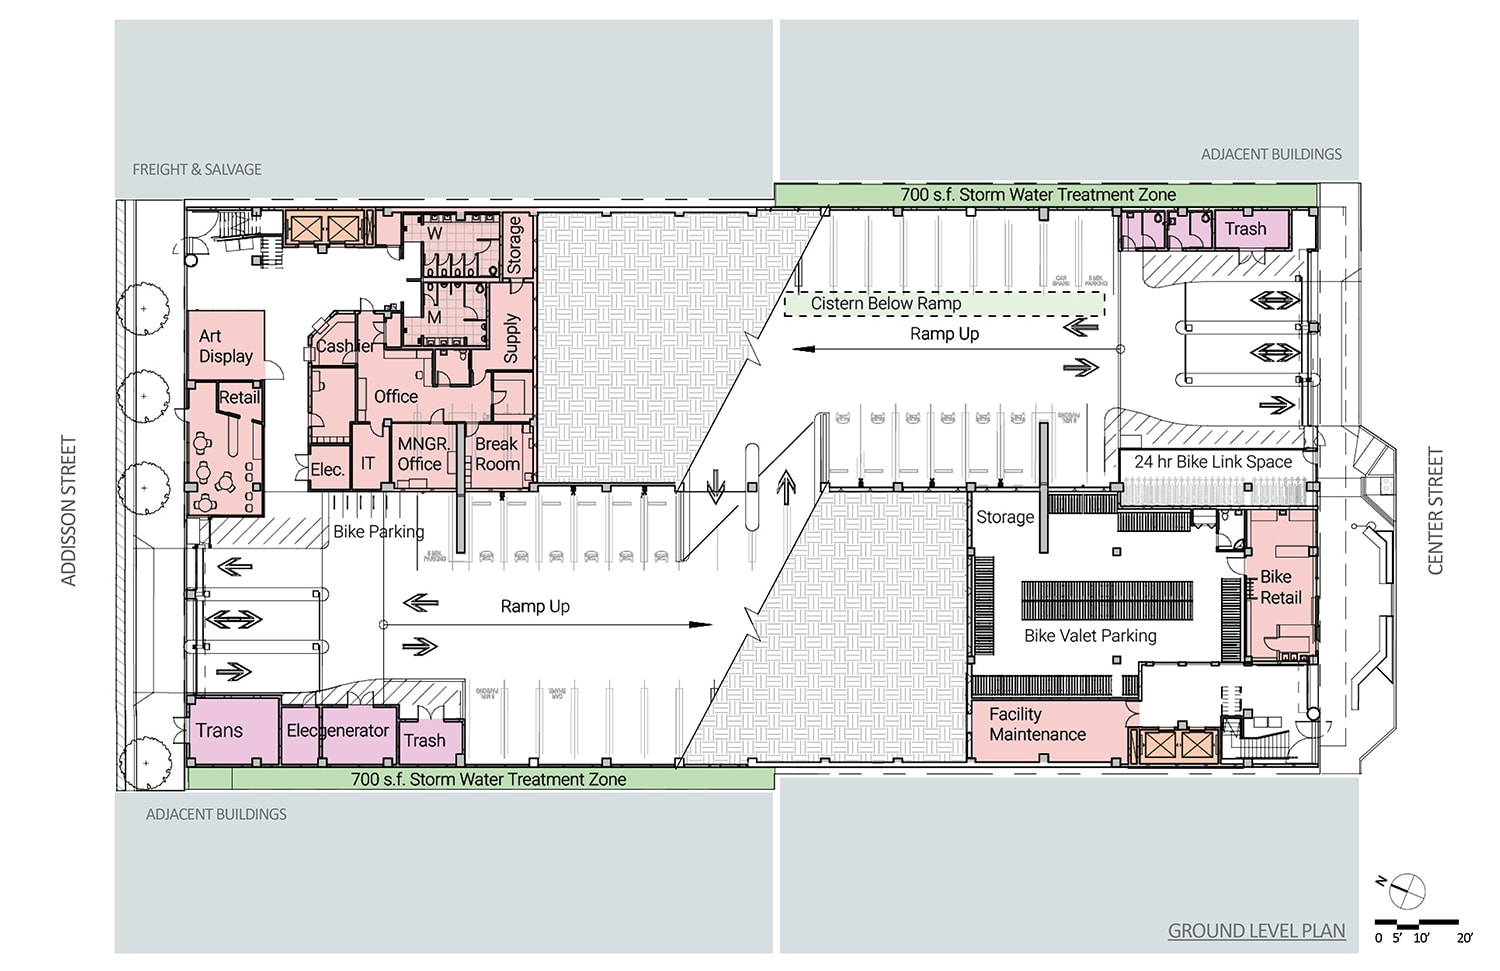 02 Floor Plans Drawing credits ©Marcy Wong Donn Logan Architects}